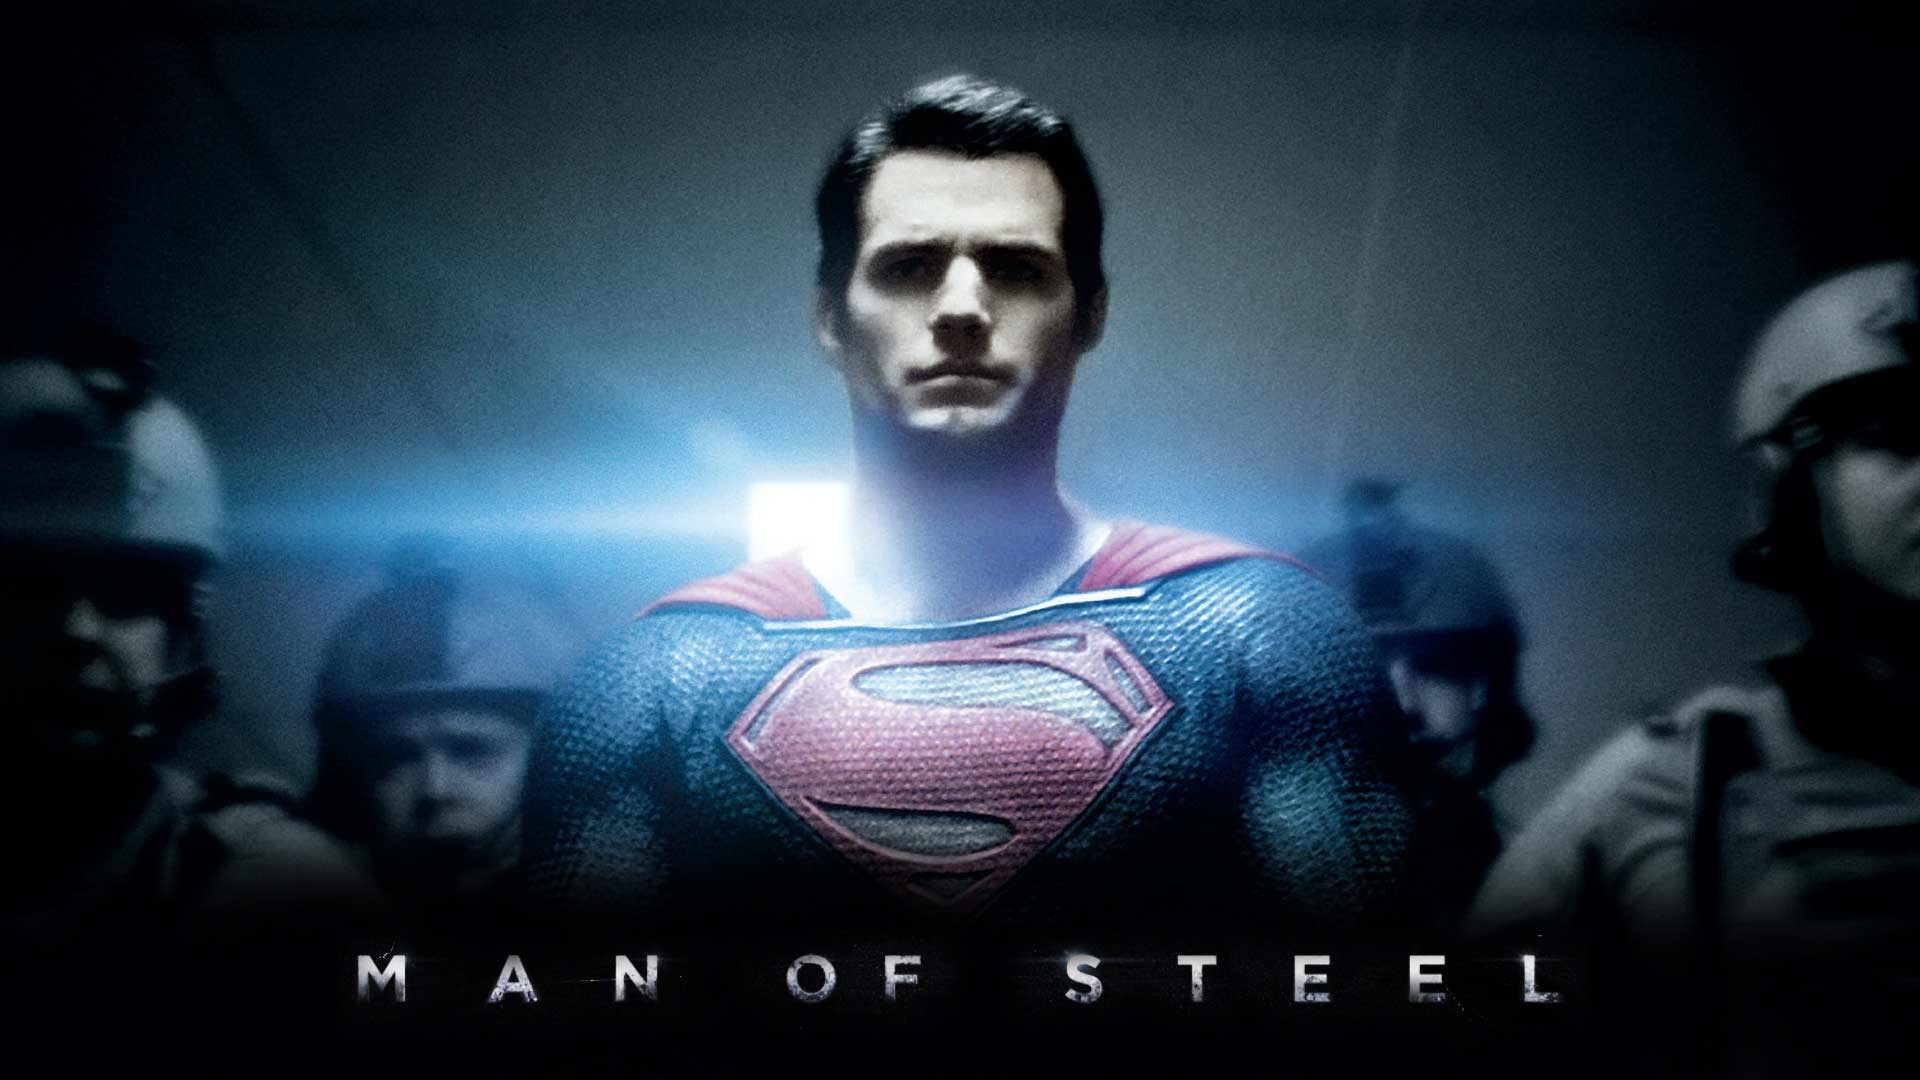 1920x1080 Man of Steel Wallpapers and Desktop Backgrounds